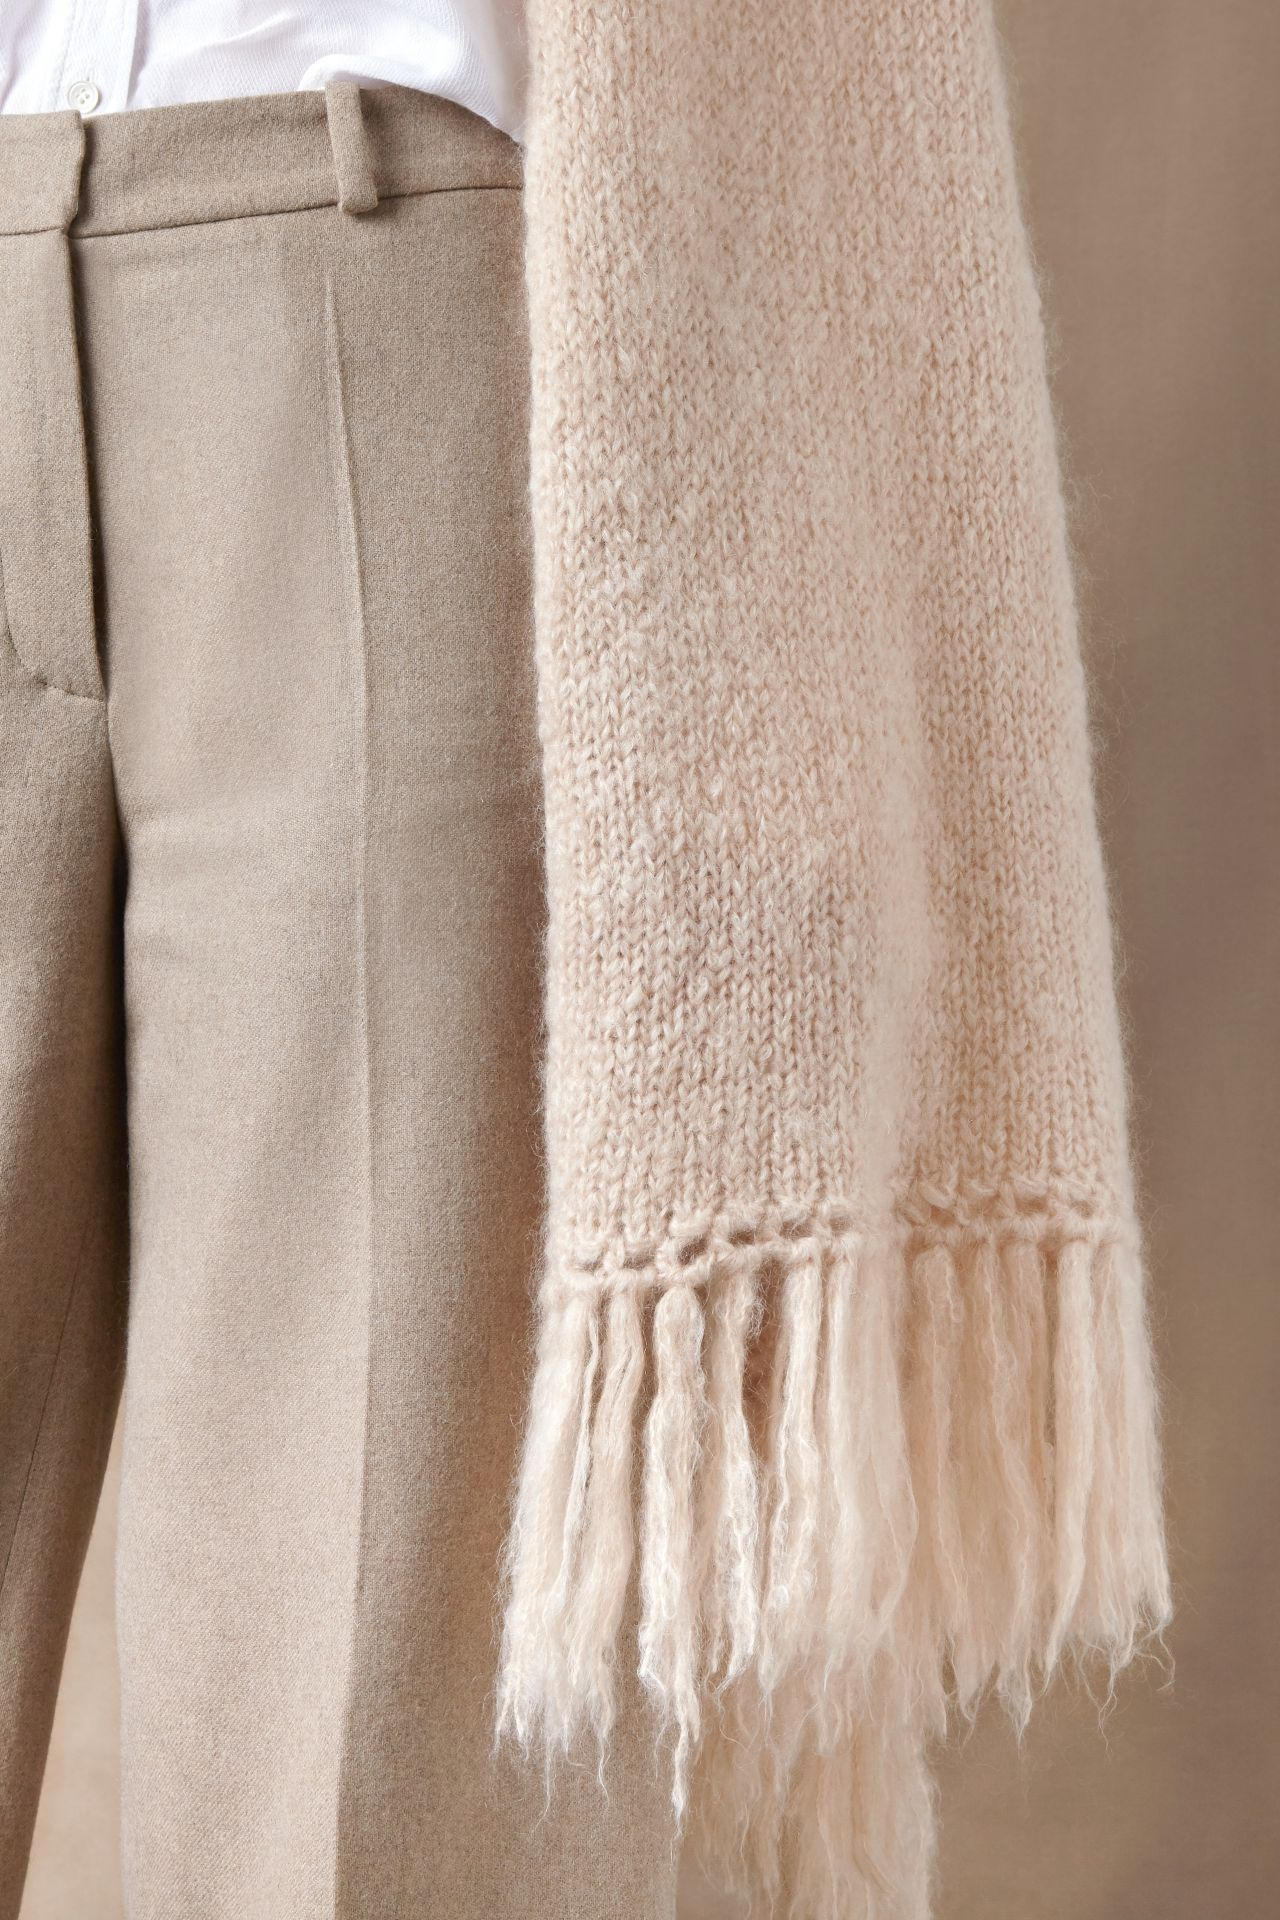 Bets mohair wool scarf from Dutch goats detail fringe.